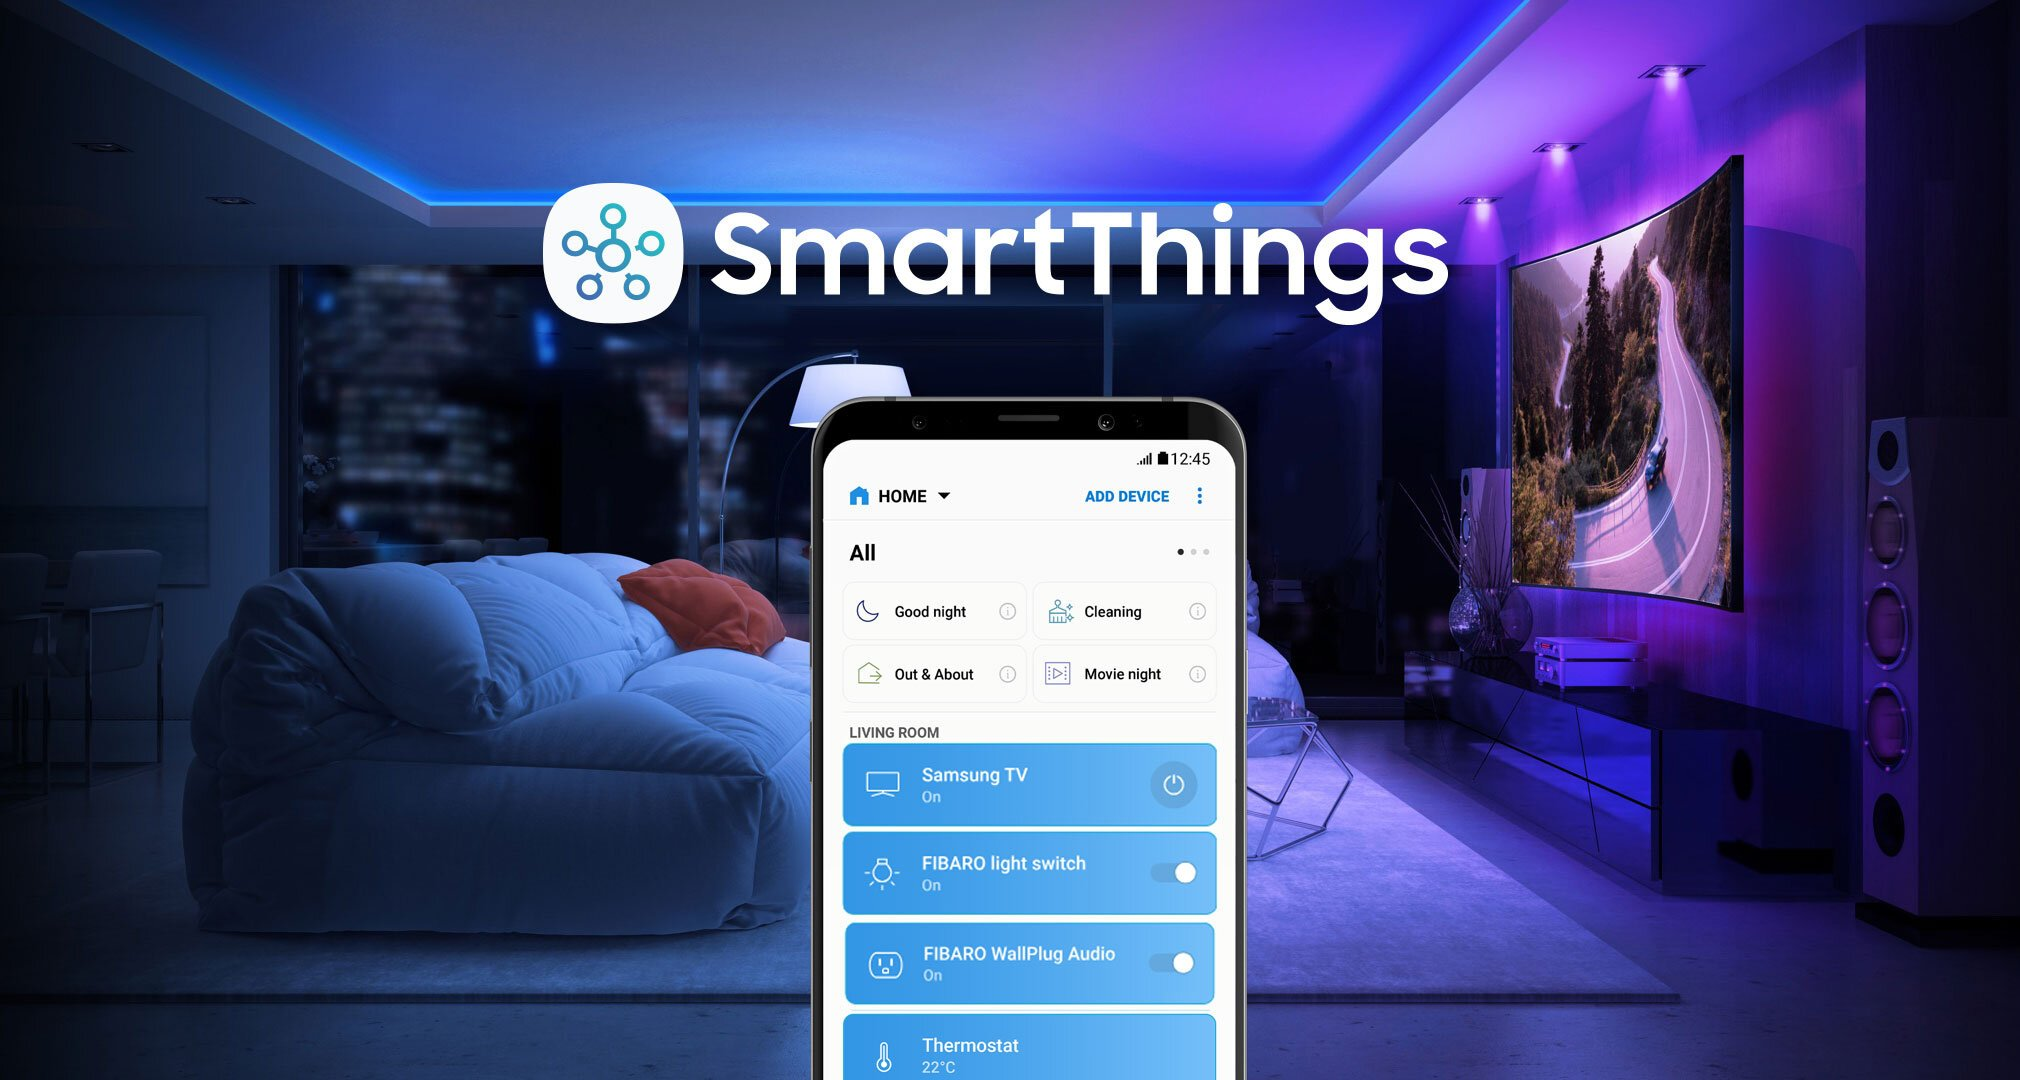 Works with SmartThings - Sinergia entre FIBARO y Samsung